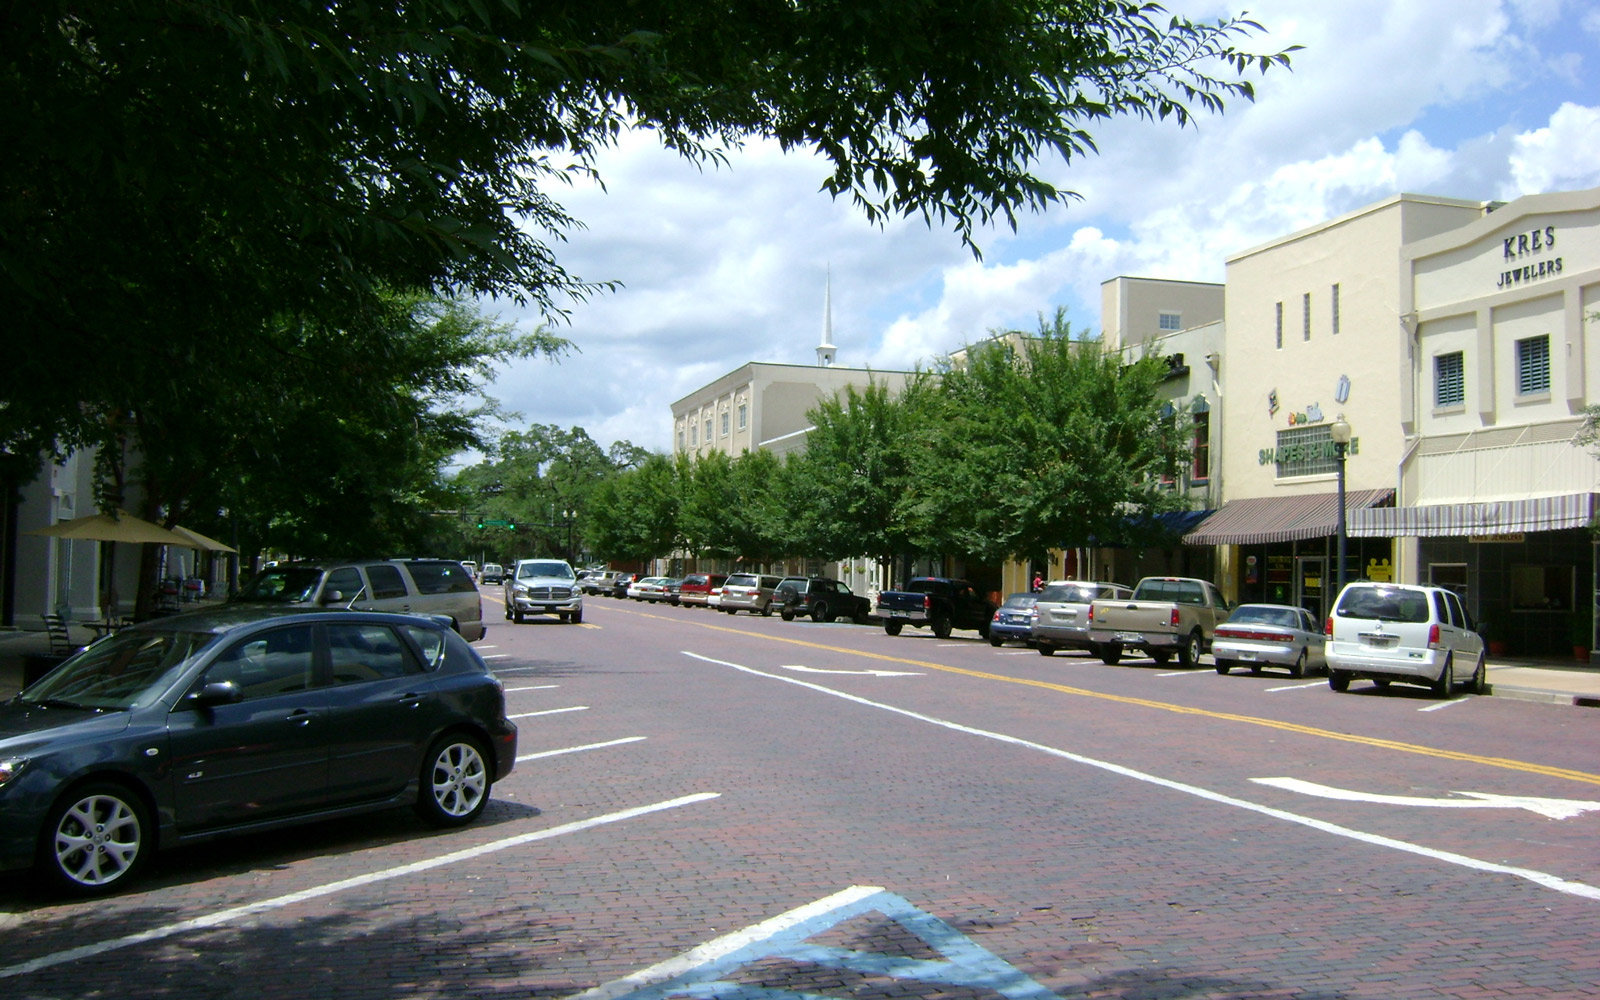 City streets of Thomasville, Goergia, United States of America